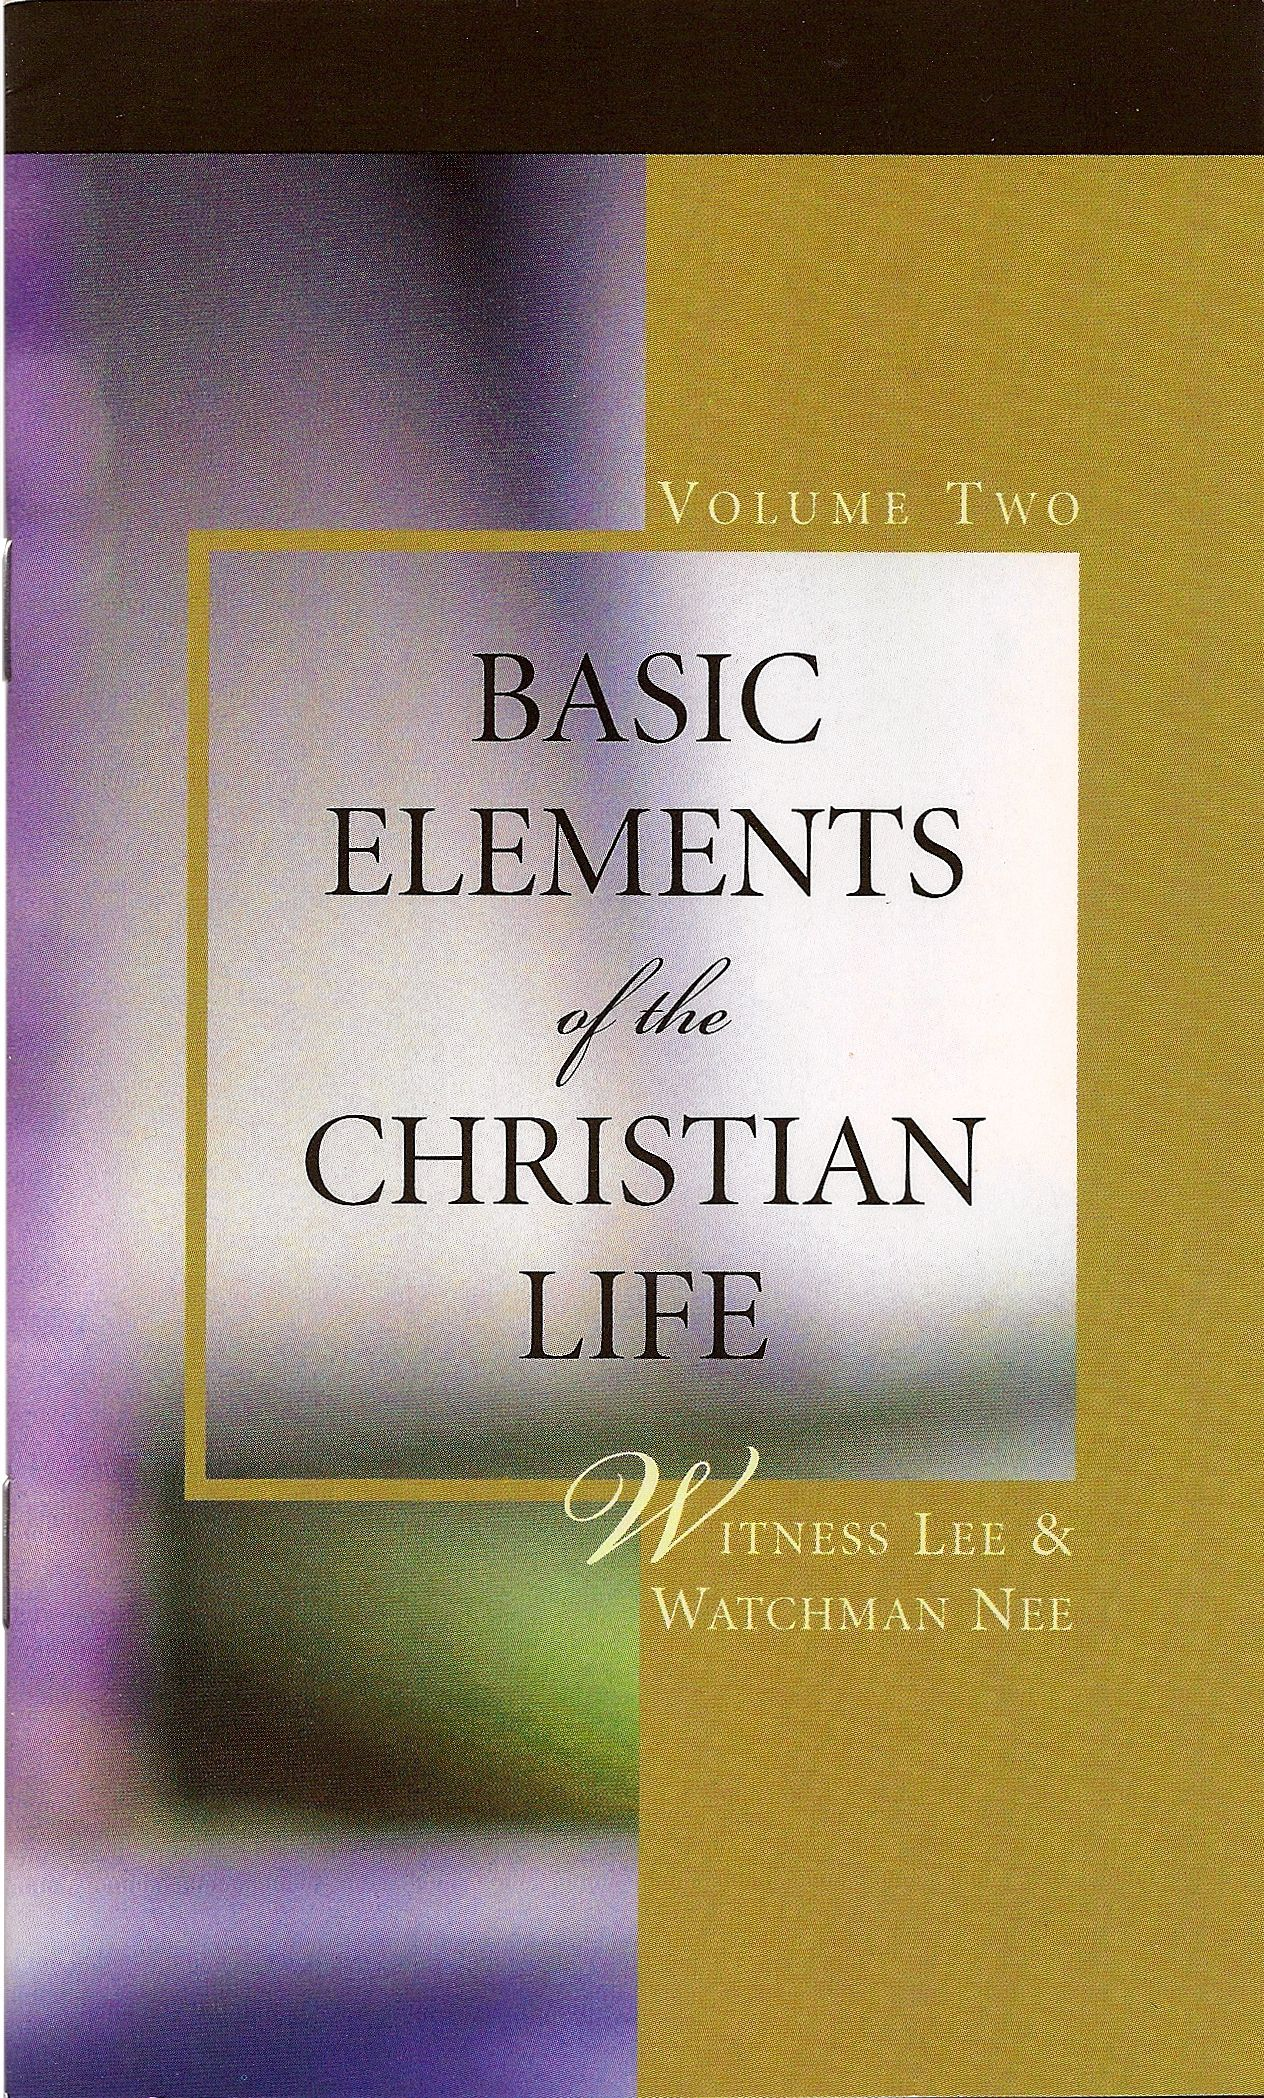 The central matter of the Christian life is to know Christ Himself. For this we need to contact and experience Him in a living way day by day. This daily experience includes proper spiritual food, regular spiritual worship, and deep spiritual growth, which are discussed in this volume.